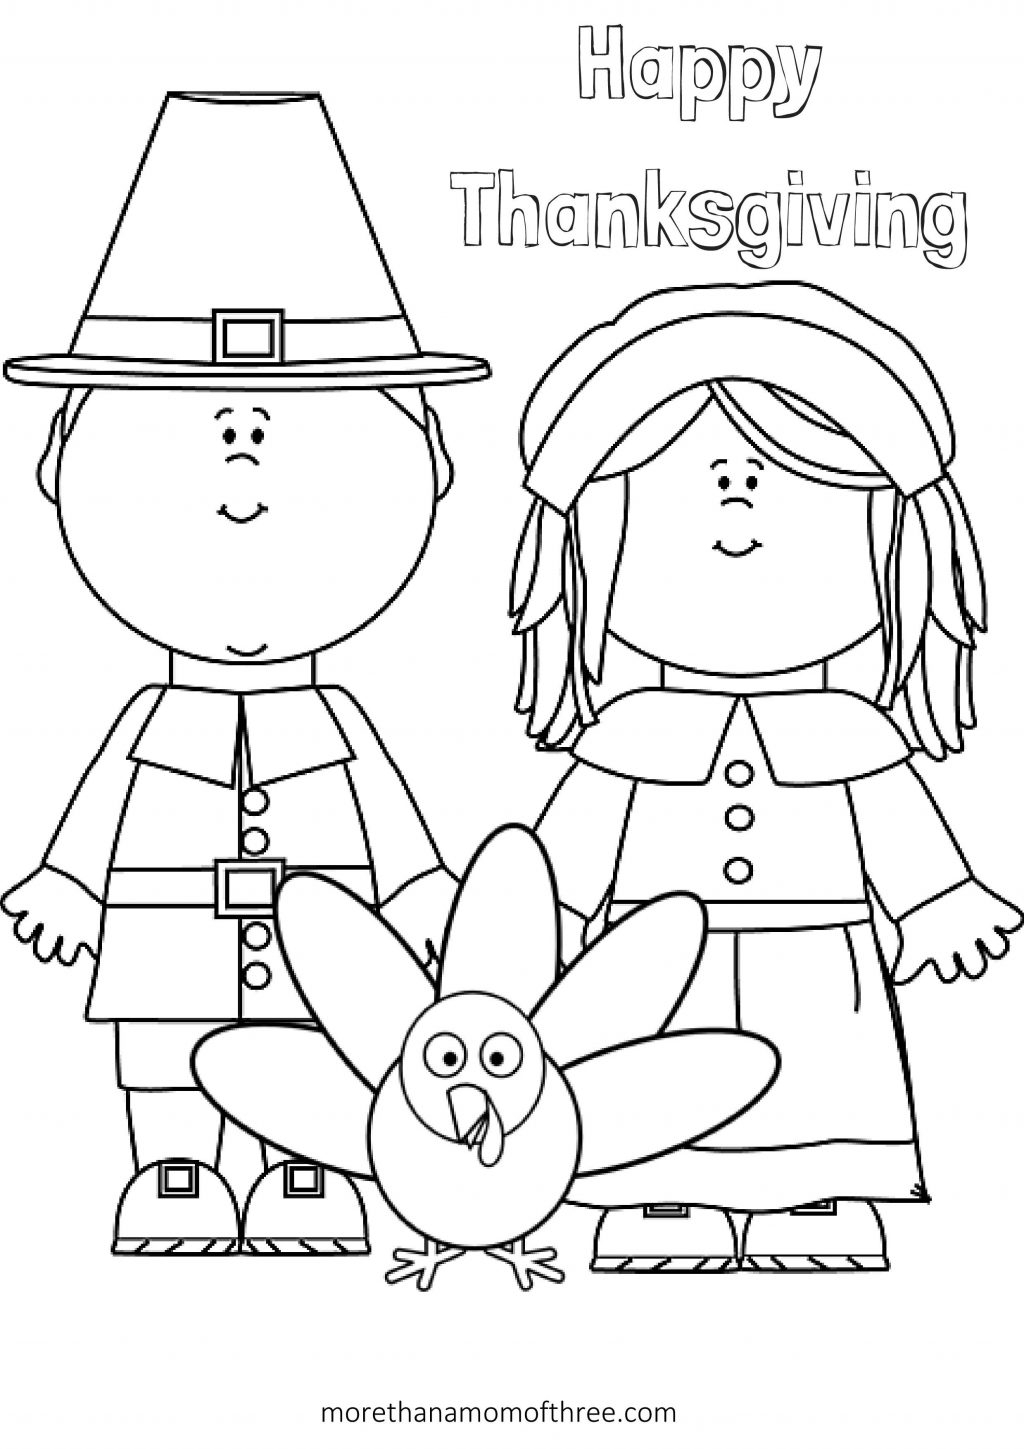 Thanksgiving Coloring Pages For Boys Coloring Pages Happy Thanksgiving Coloring Pages Printable